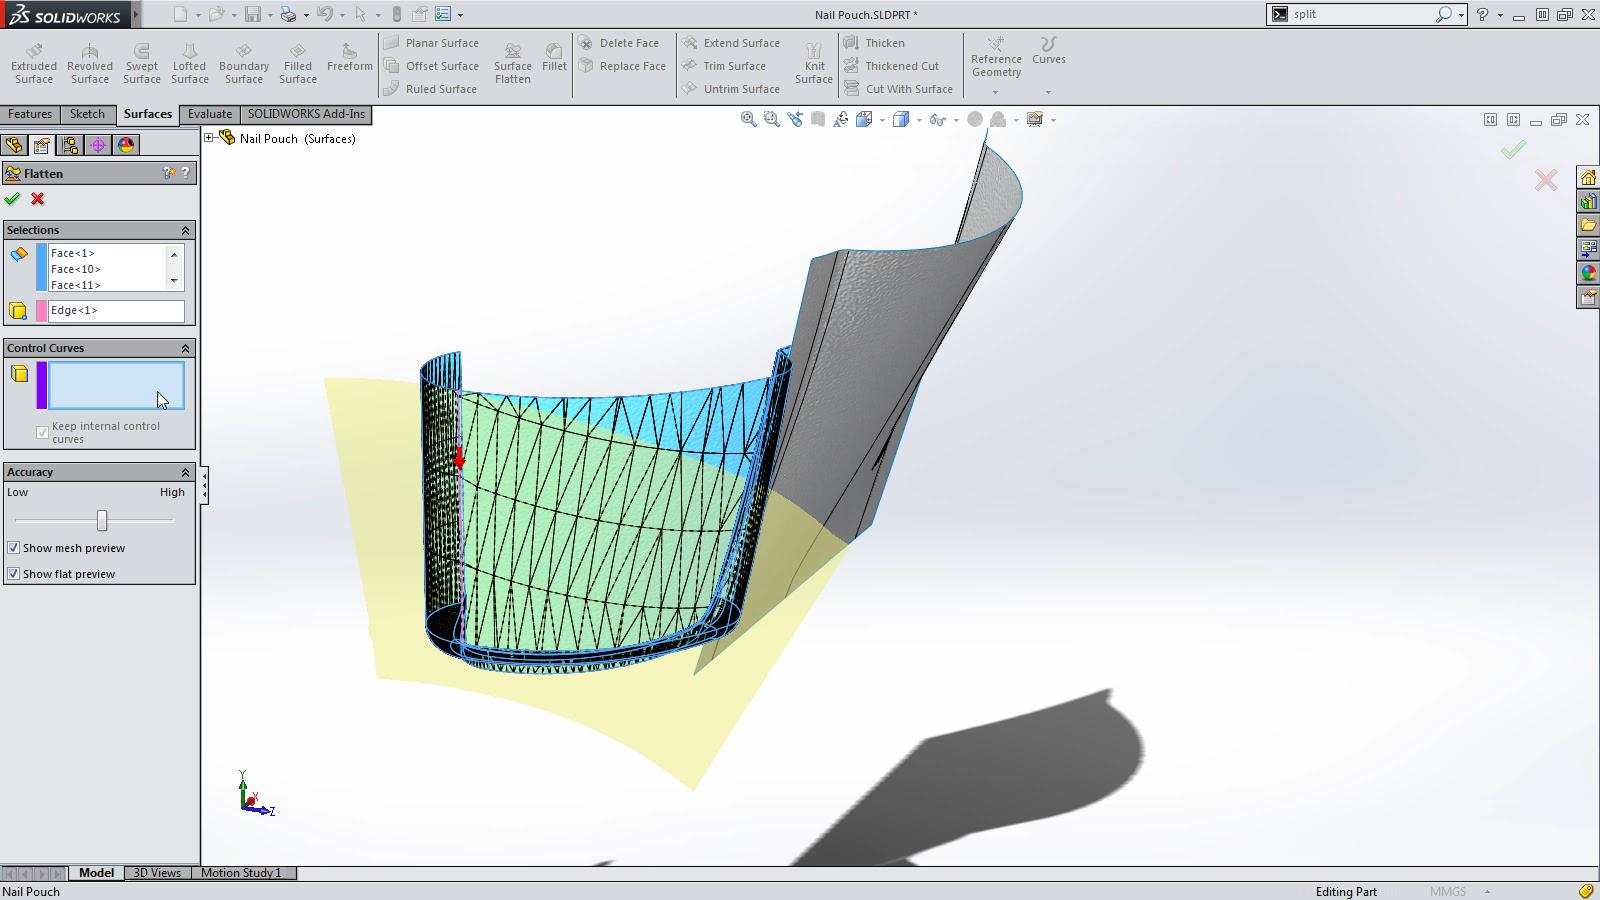 SOLIDWORKS 2015 Sneak Peek: Flatten Surface